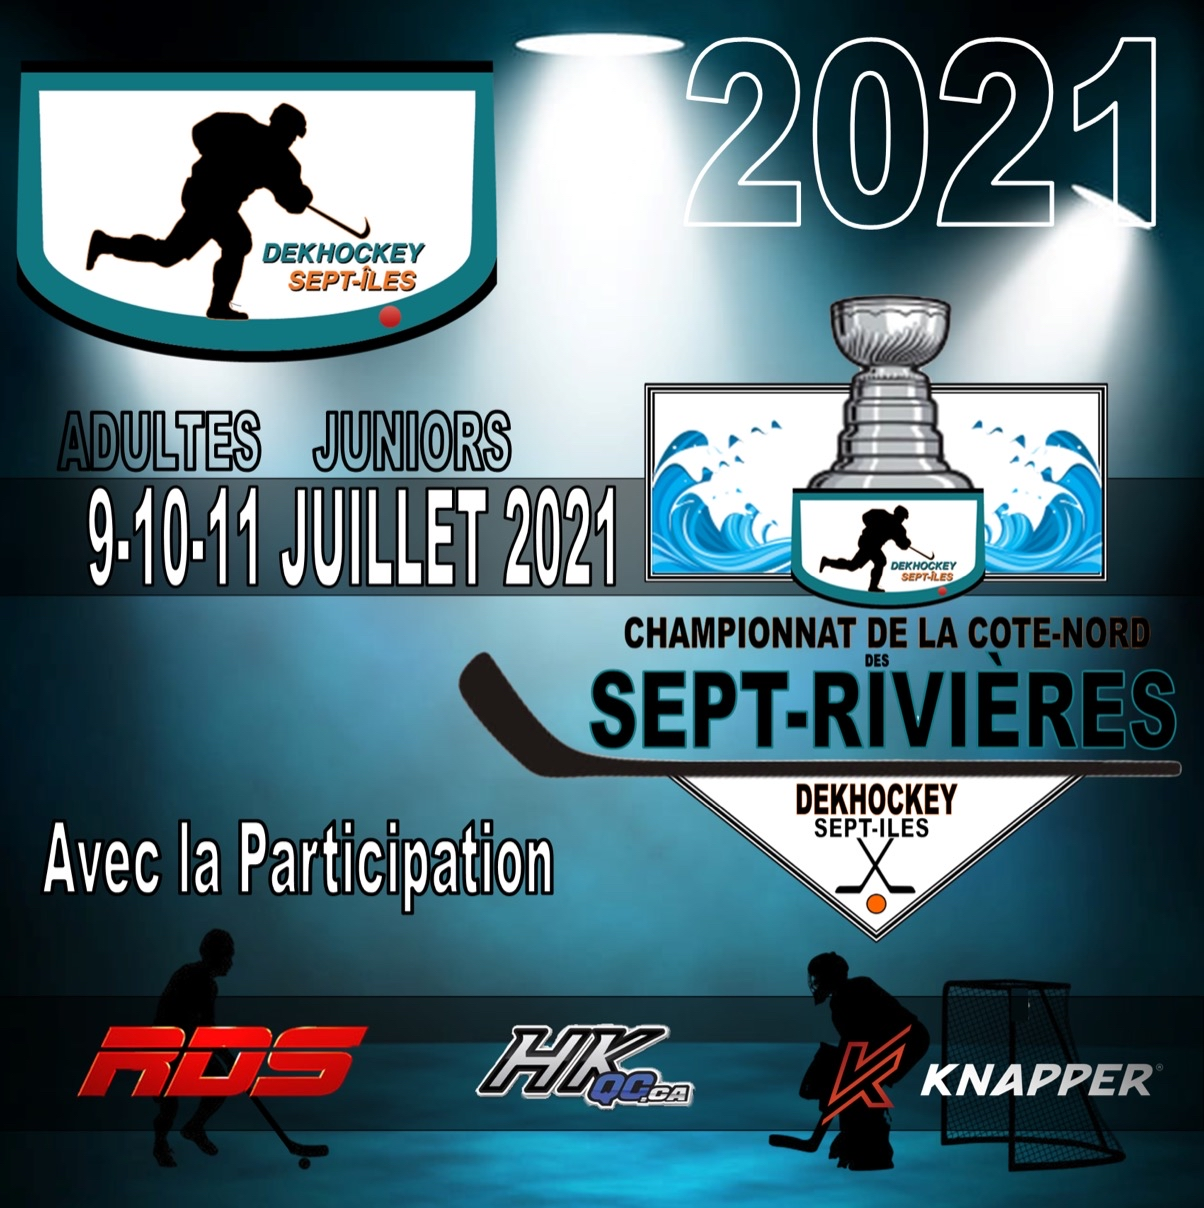 DekHockey-Sept-Iles